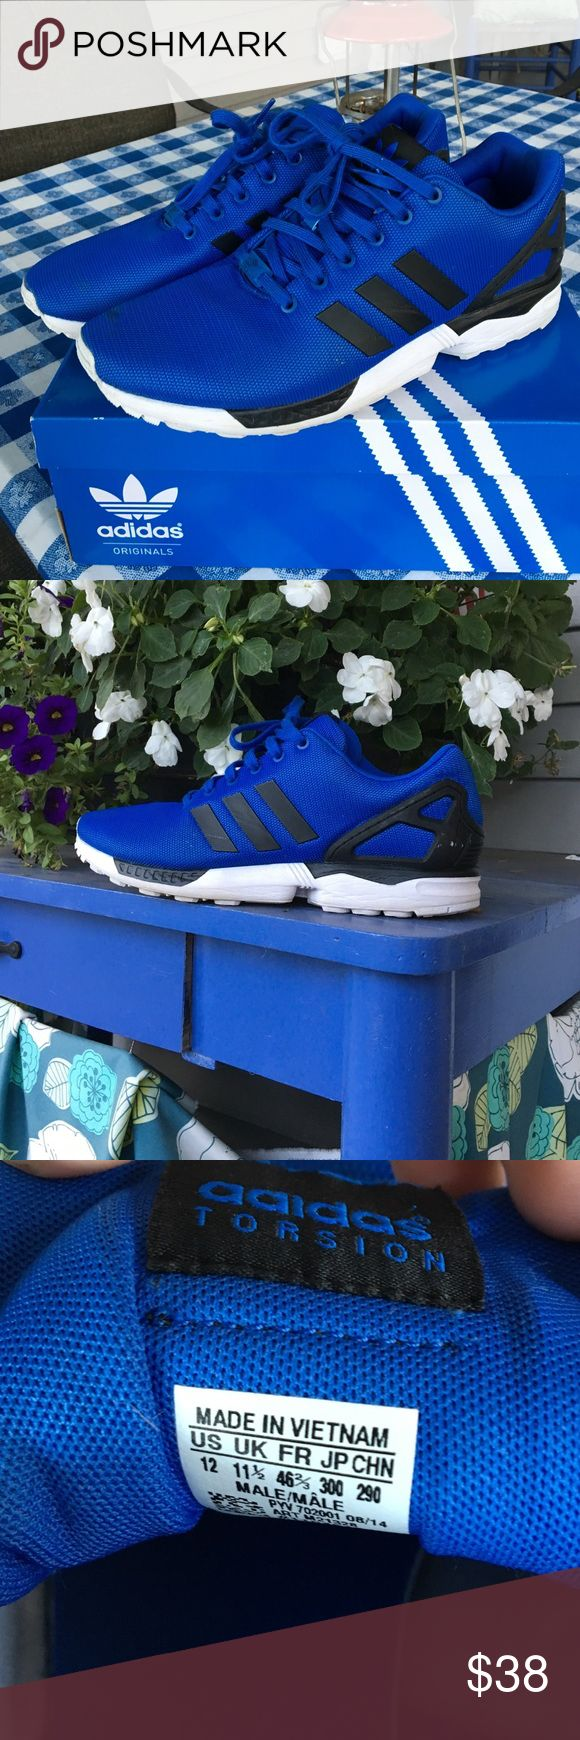 Adidas ZX Flux (blue) Comfortable blue mesh upper, stylish branding on medial and lateral sides as well as the tongue, and a torsion bar and plastic heel cage make this shoe the ultimate day to day wear. Minor scratches on stripes and cage, some discoloring on toe box can be removed with cleaner. Size 12 men's US. Adidas Shoes Sneakers